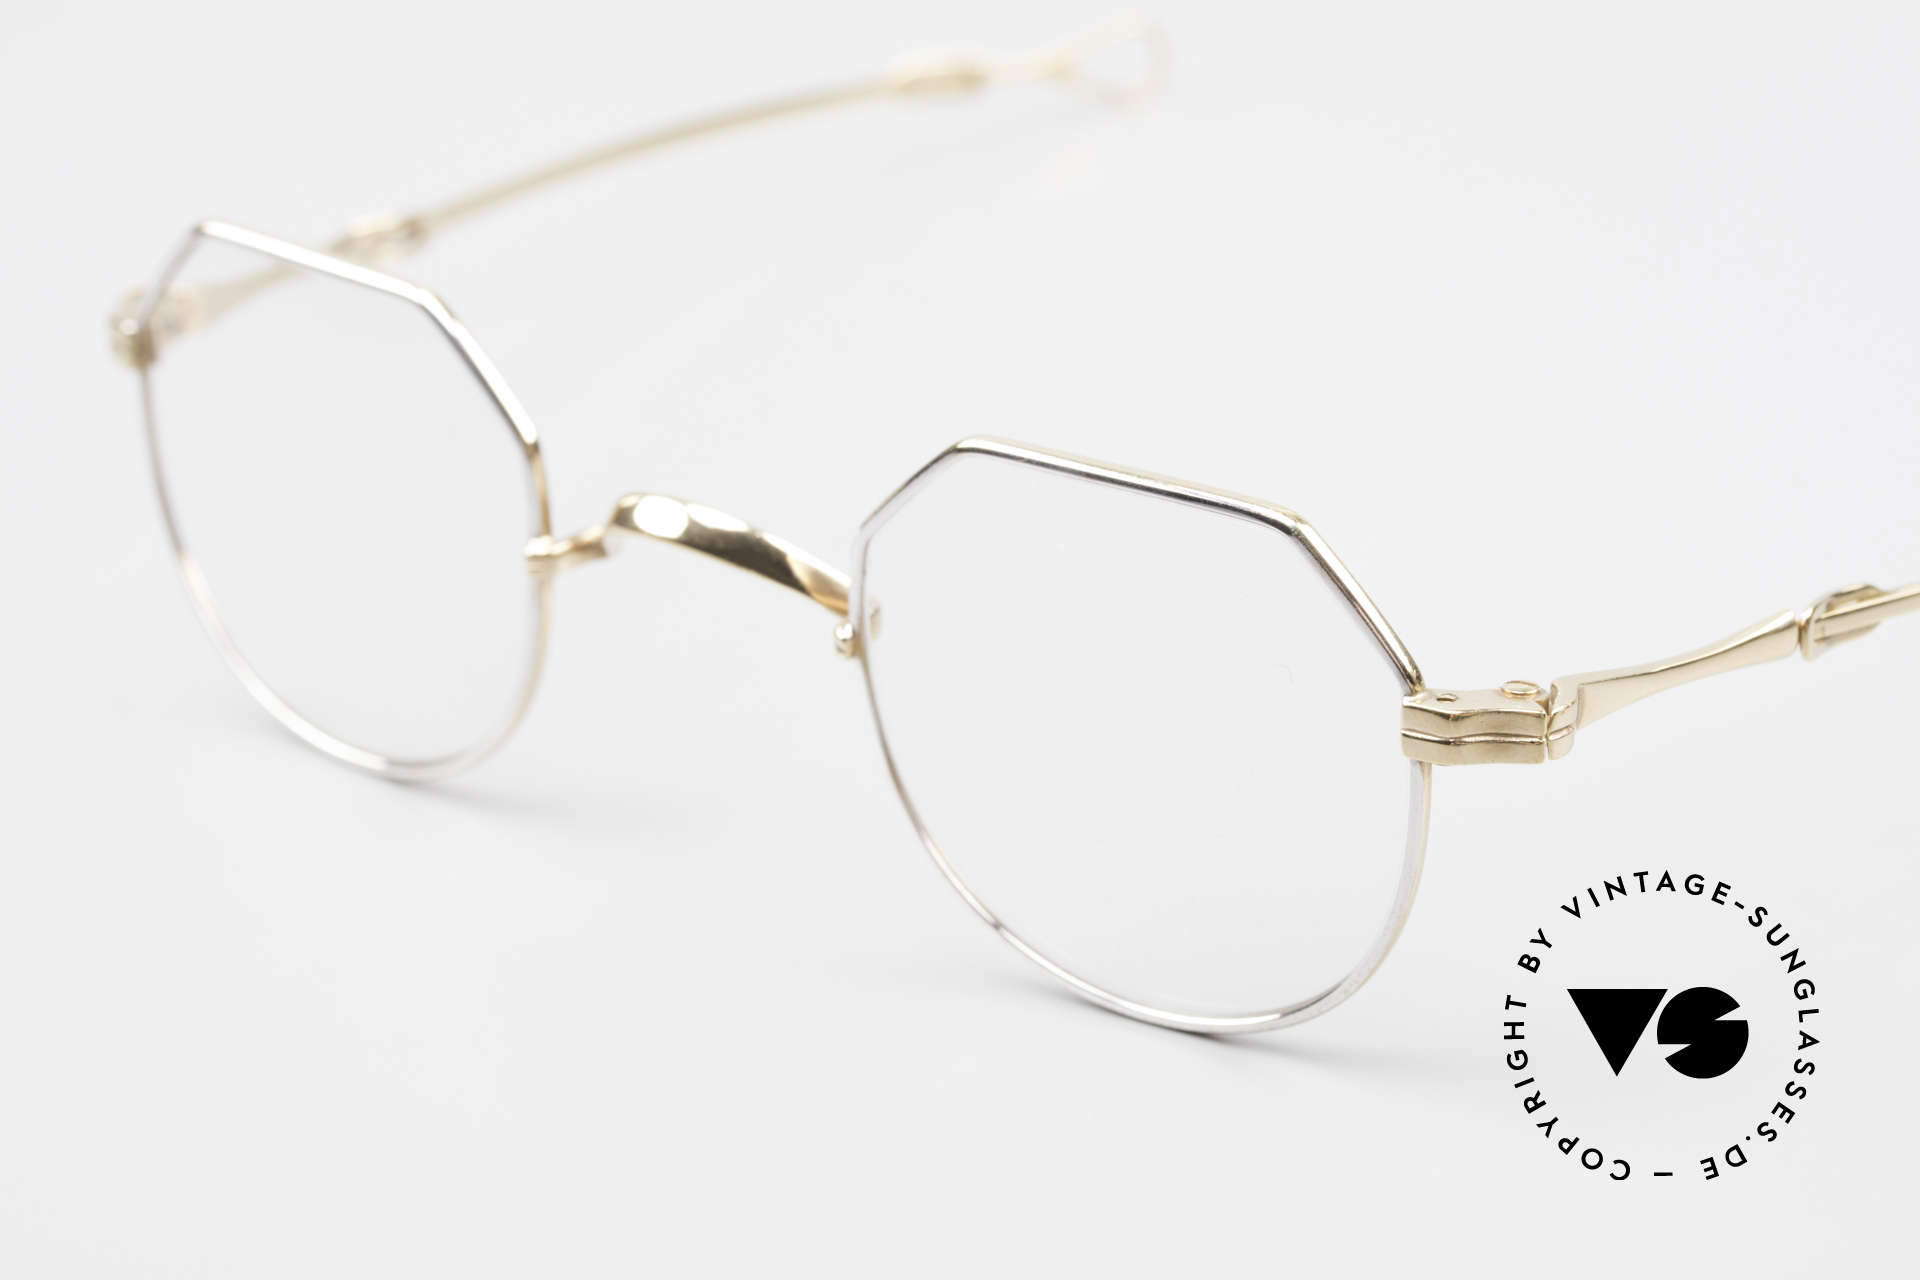 Lunor I 18 Telescopic Glasses With Telescopic Arms, a highlight for all connoisseurs and eyewear lovers, Made for Men and Women